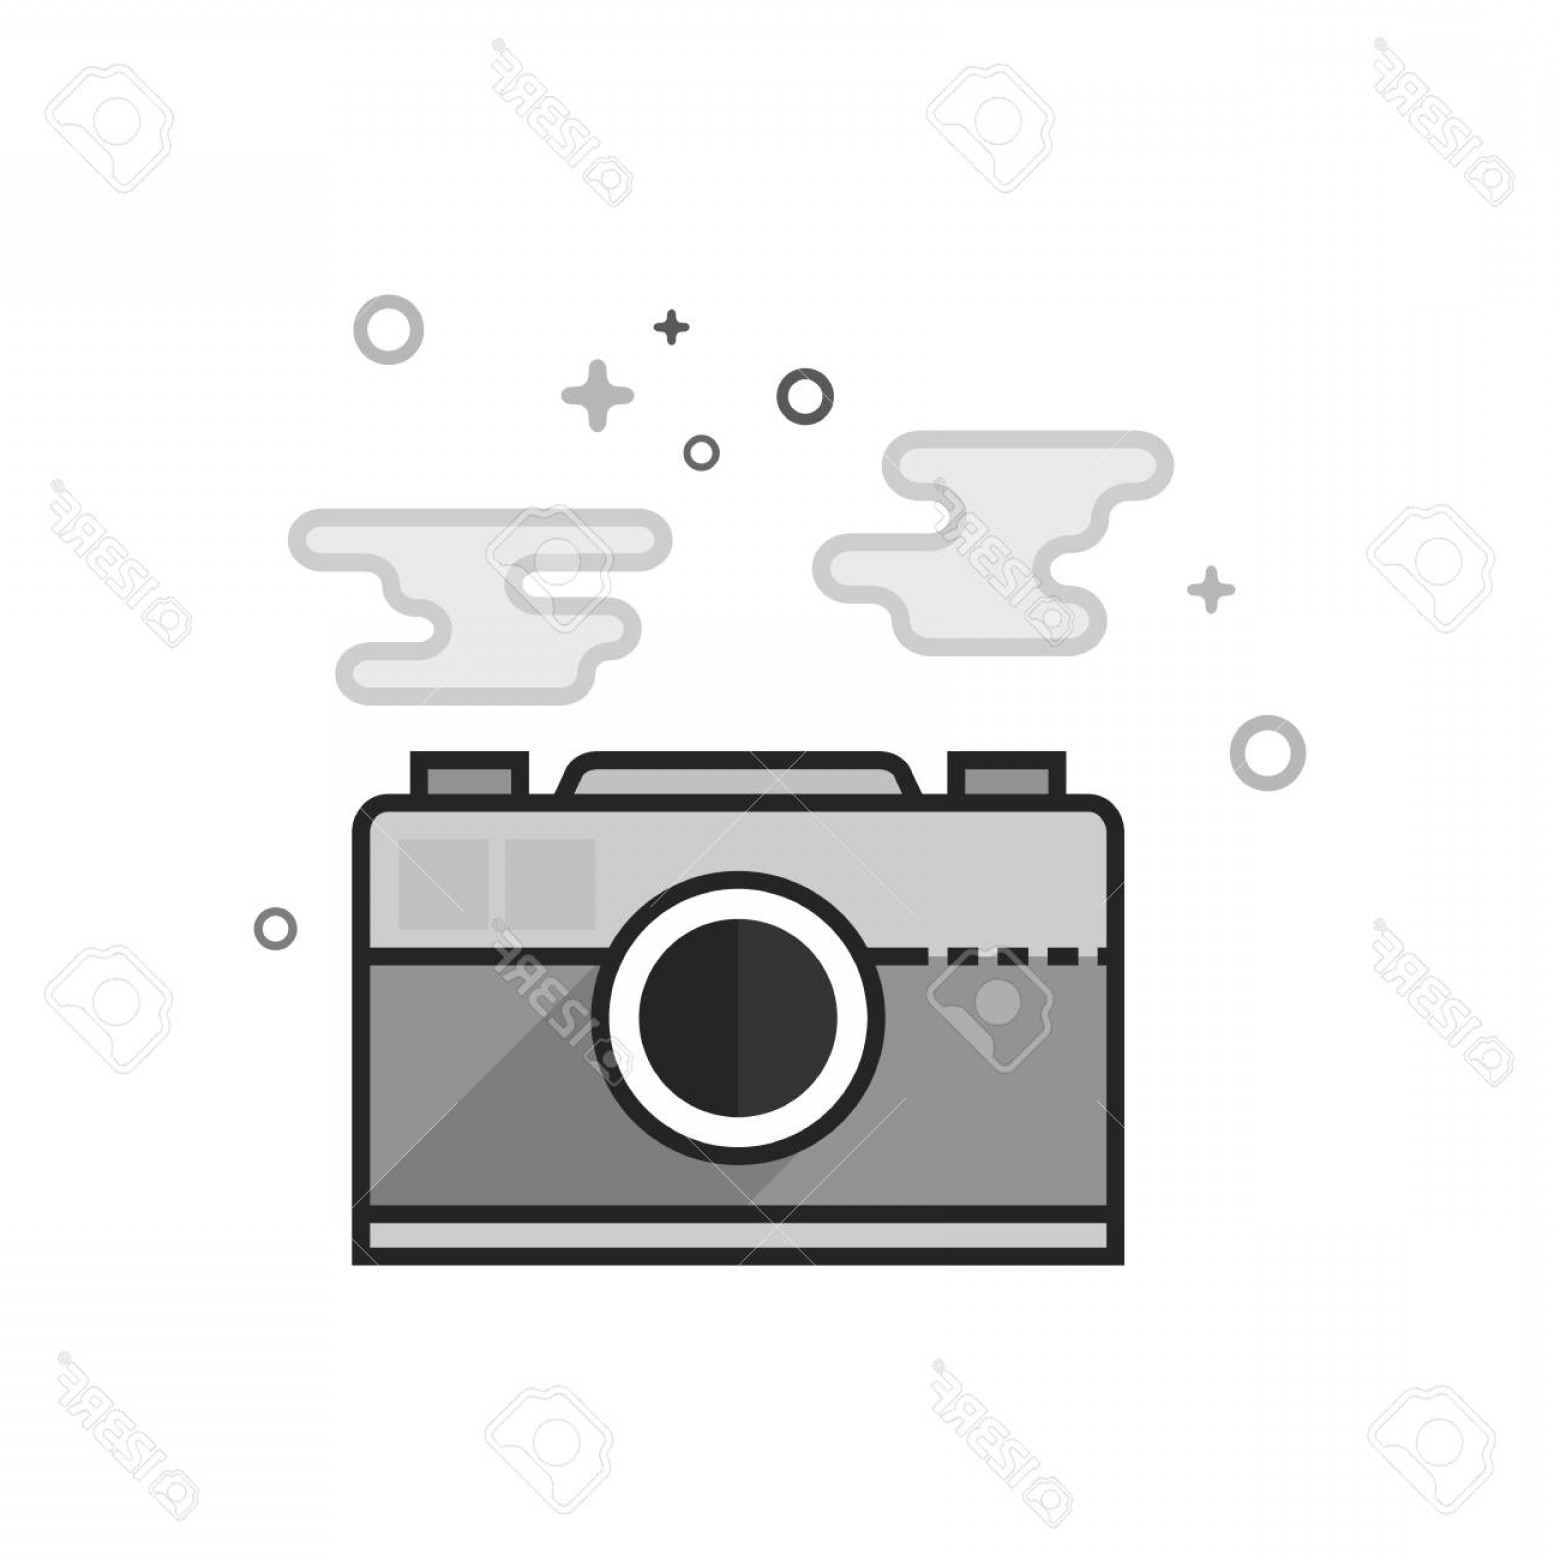 File Formats Vector Artwork: Photostock Vector Picture File Format Icon In Flat Outlined Grayscale Style Vector Illustration